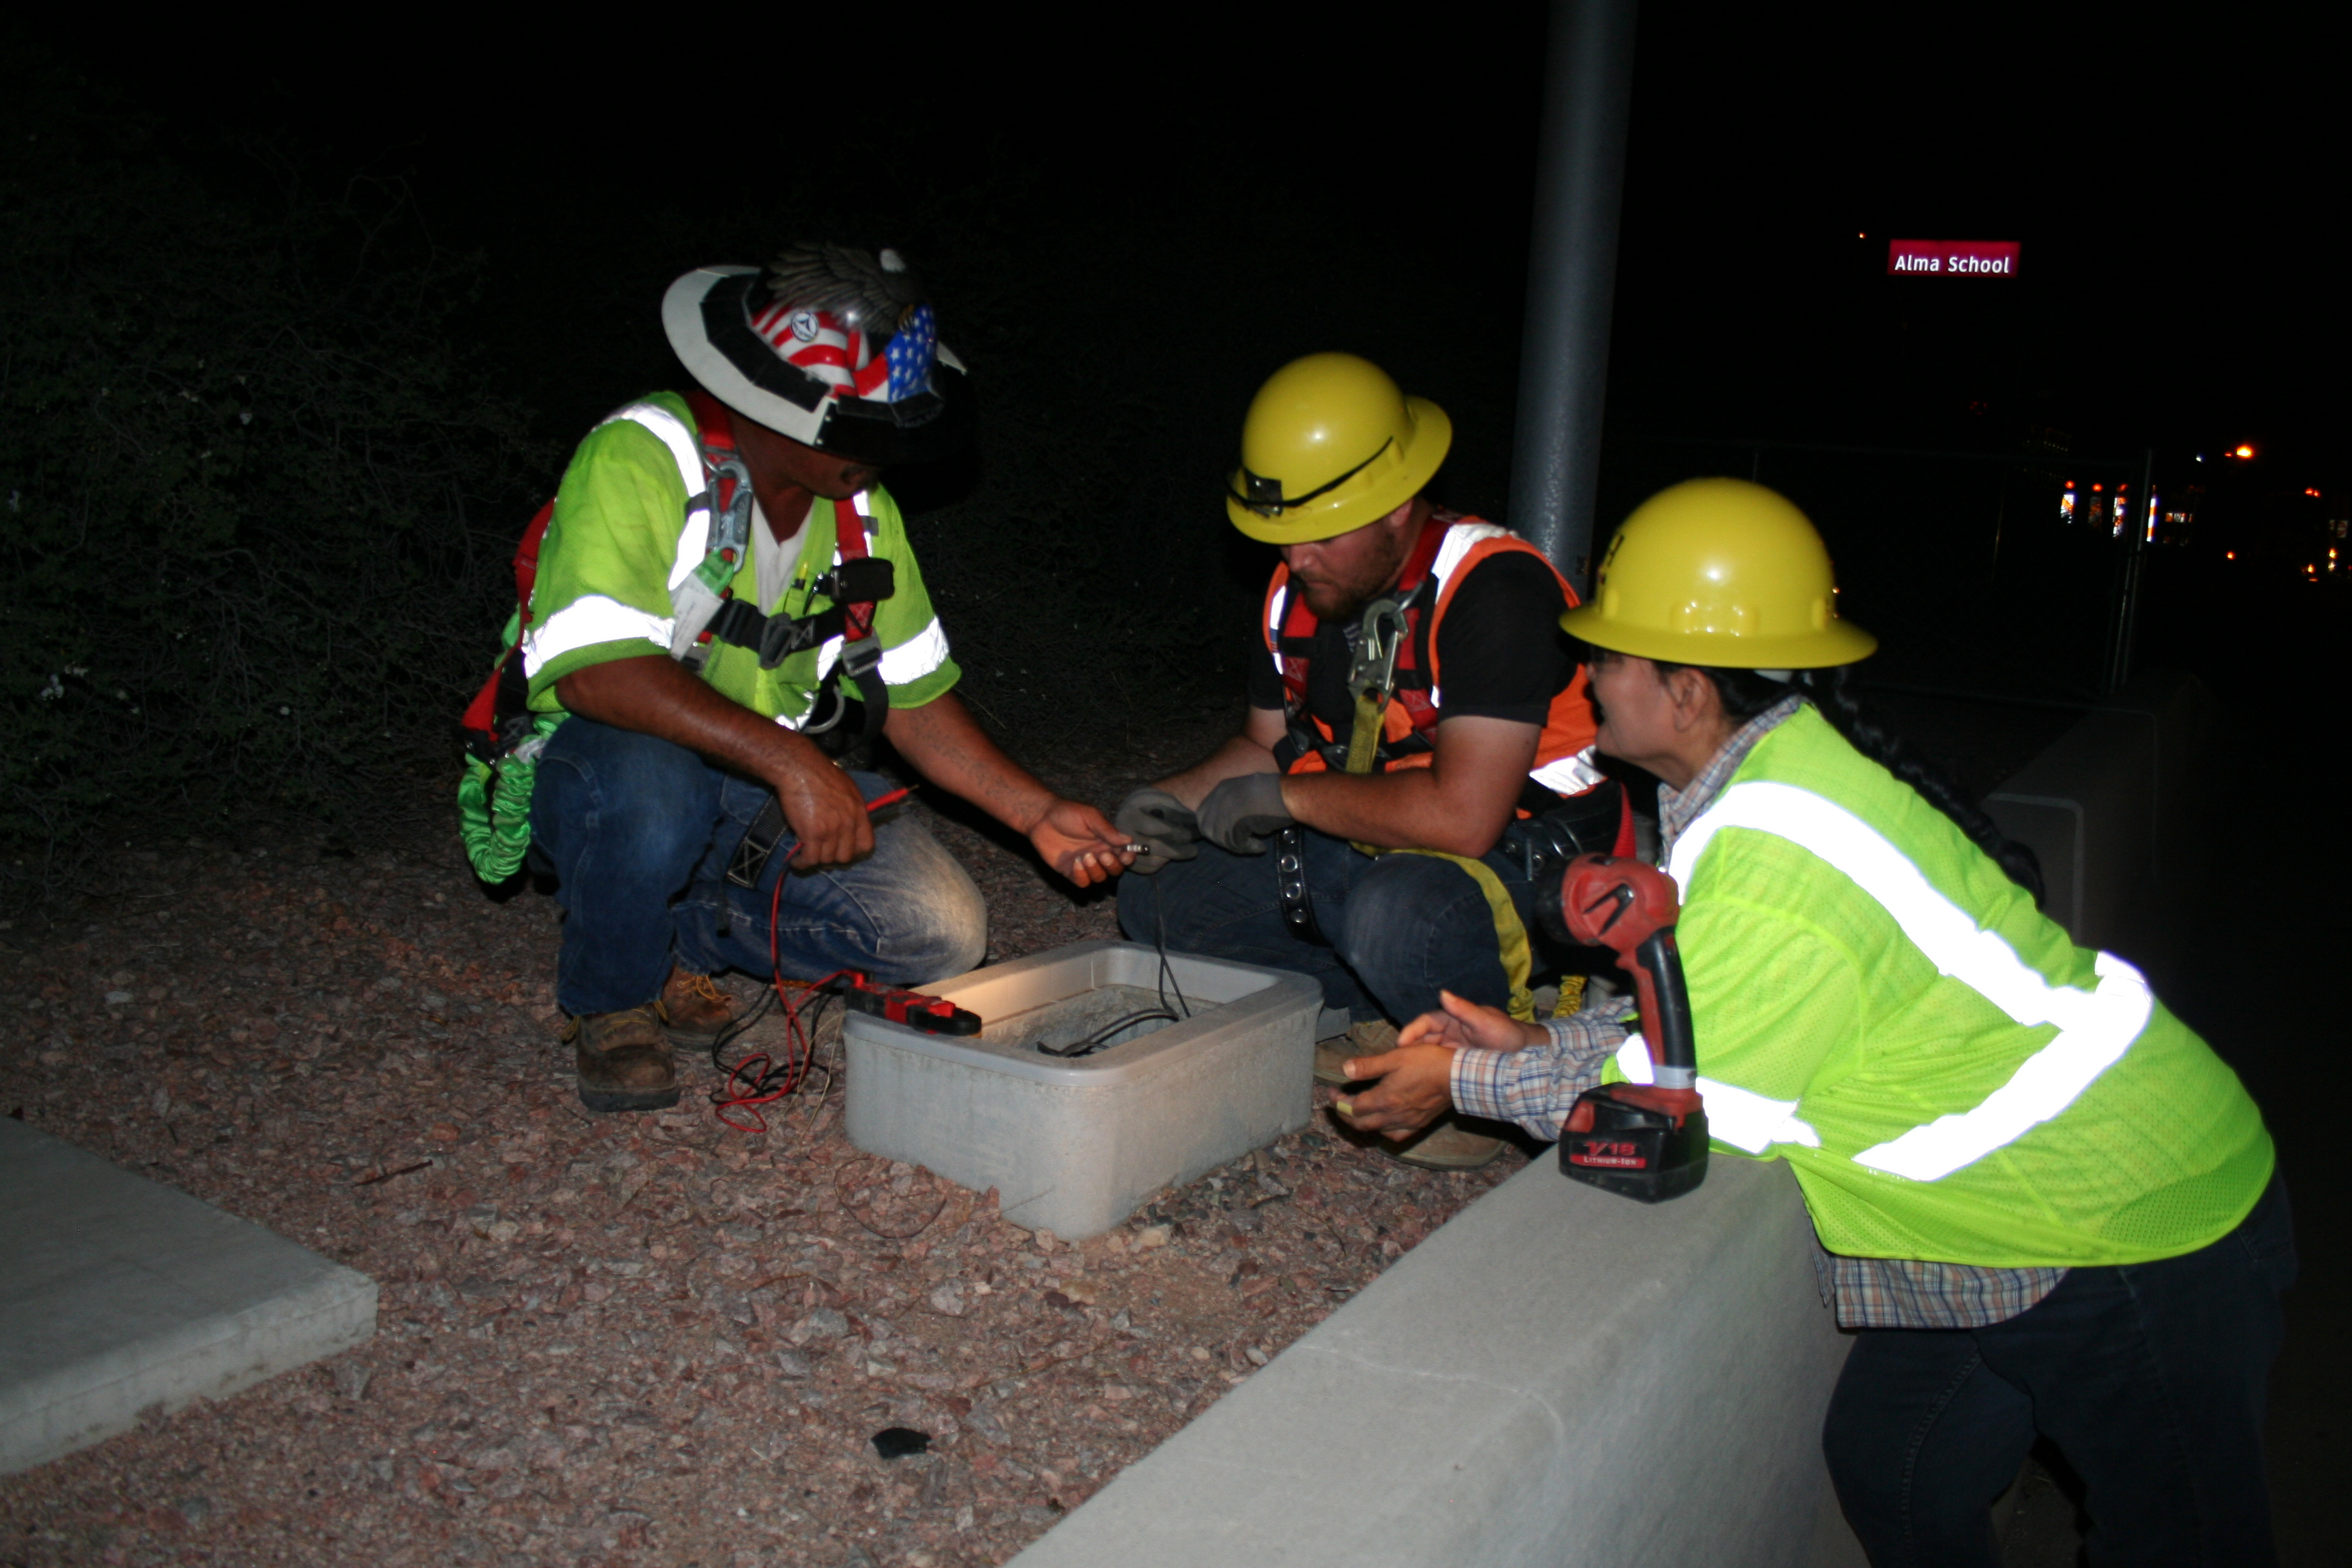 ADOT Lighting Maintenance